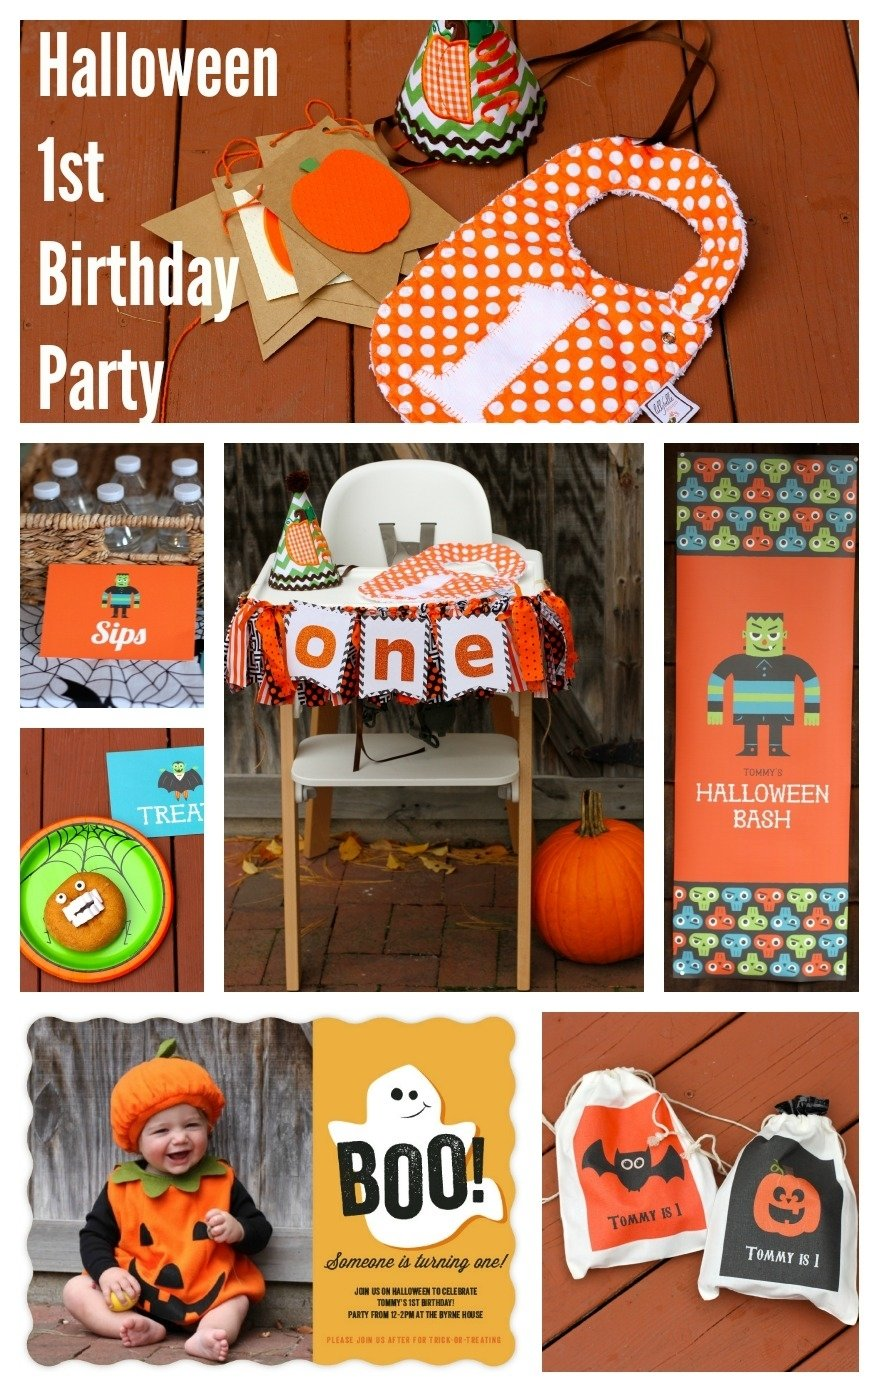 10 Attractive Halloween 1St Birthday Party Ideas a halloween first birthday party invites decor and party planning 2020